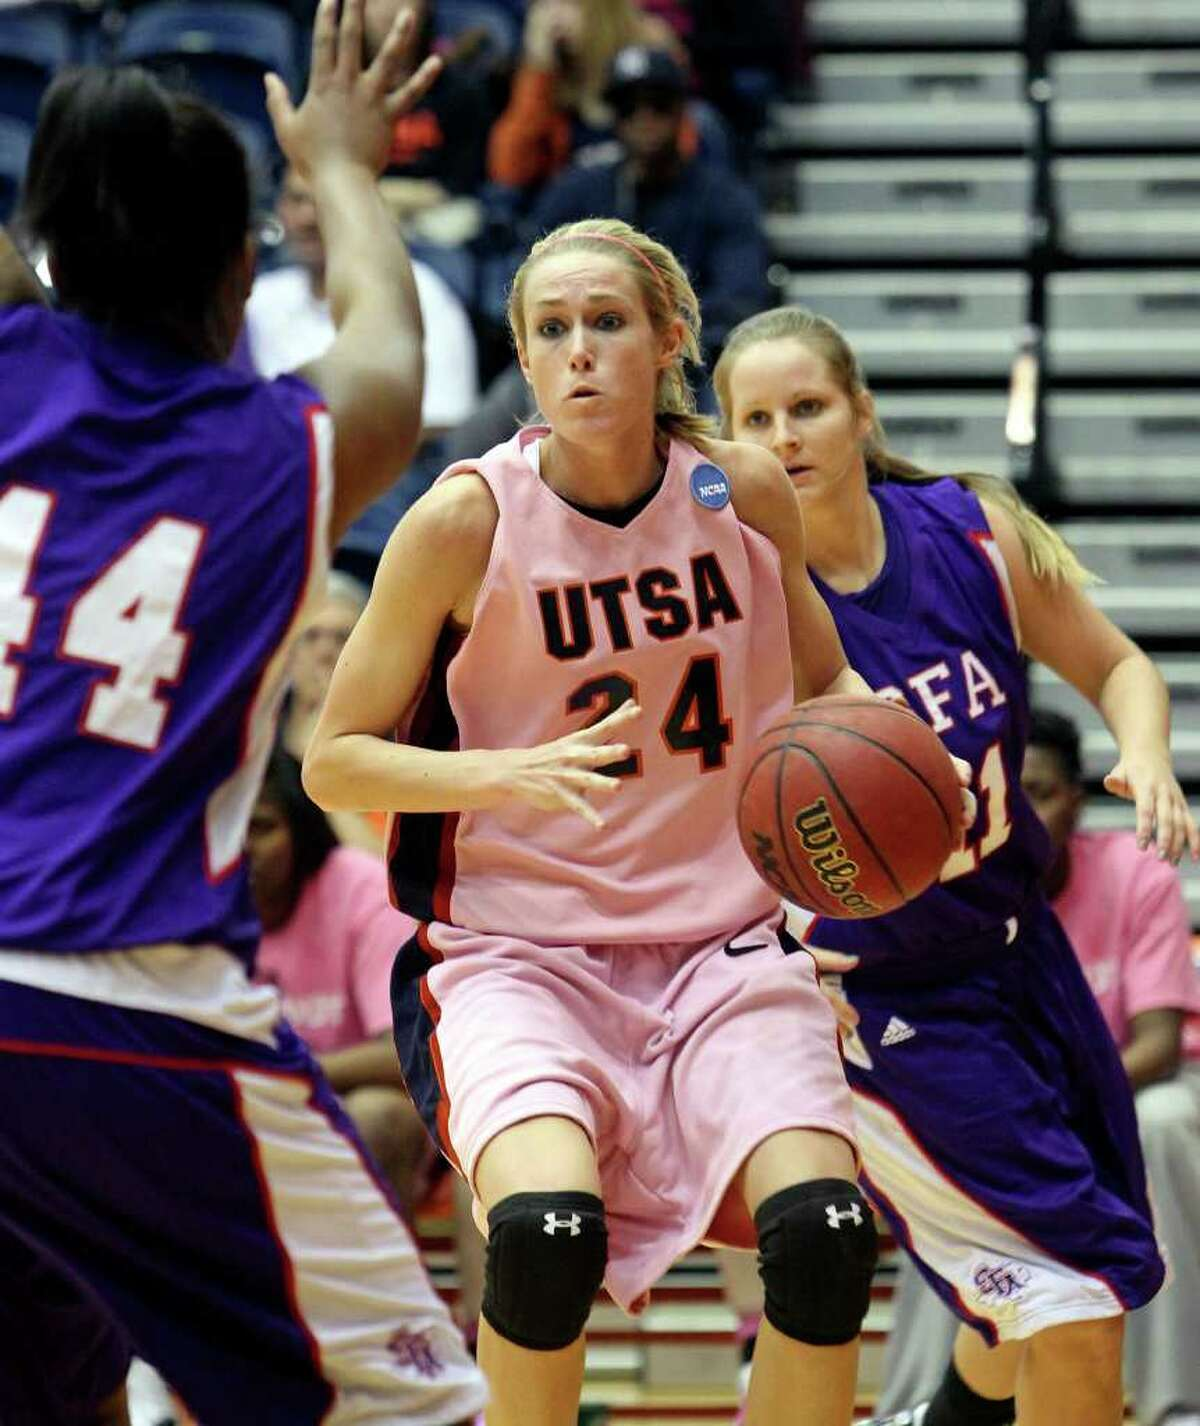 SPORTS Roadrunner guard Alysse Davis slips into an open gap and makes a play as the UTSA women play Stephen F. Austin at the UTSA Convocation Center on February 12, 2011. Tom Reel/Staff